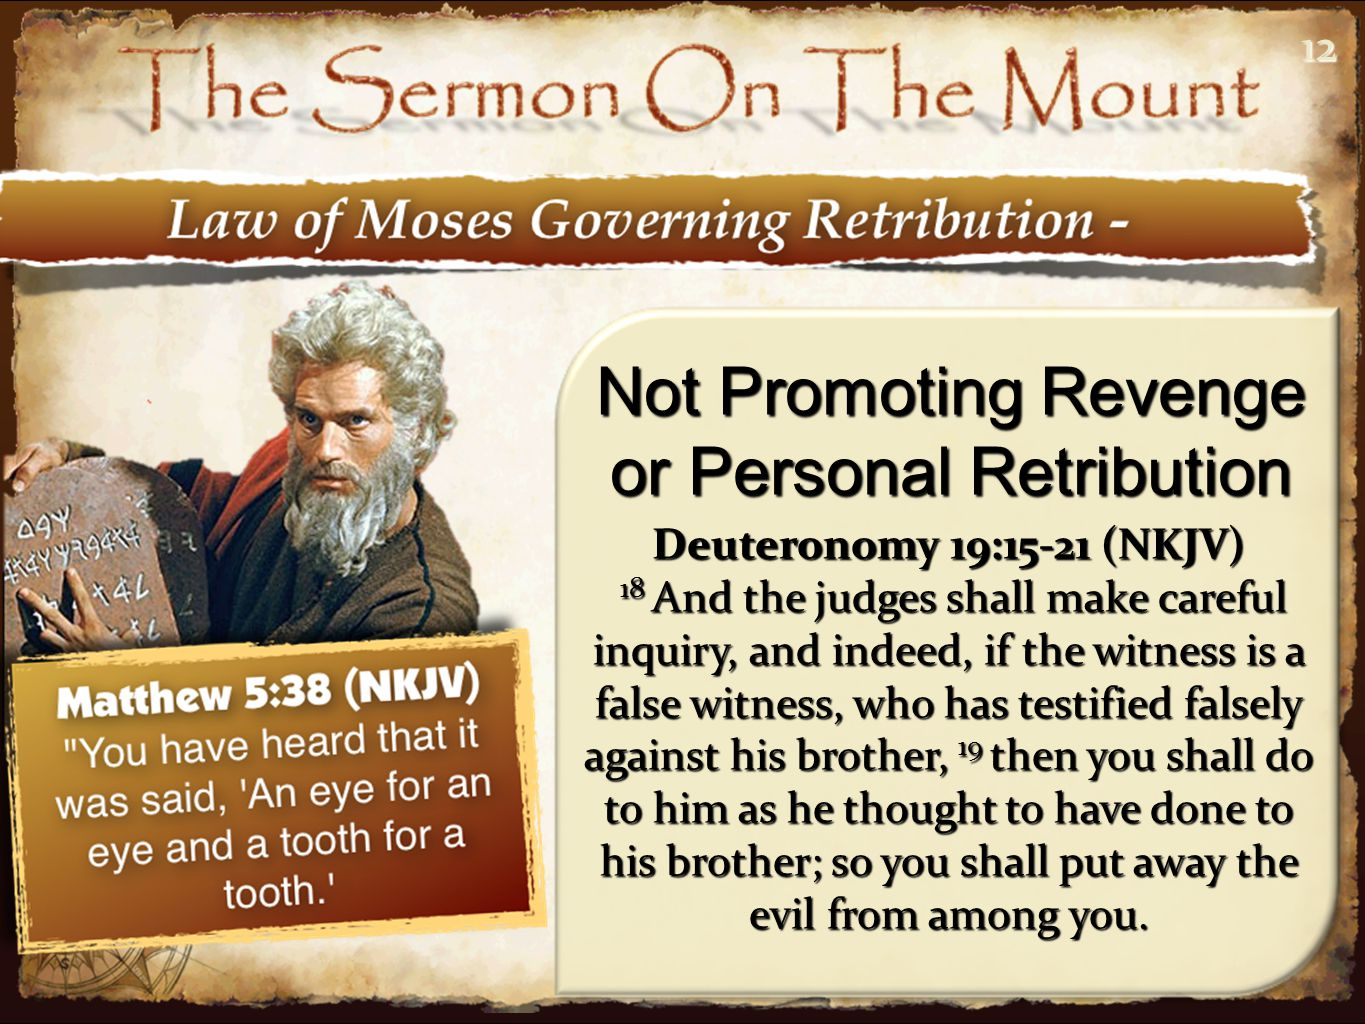 1212 Not Promoting Revenge or Personal Retribution Deuteronomy 19:15-21 (NKJV) 18 And the judges shall make careful inquiry, and indeed, if the witness is a false witness, who has testified falsely against his brother, 19 then you shall do to him as he thought to have done to his brother; so you shall put away the evil from among you.